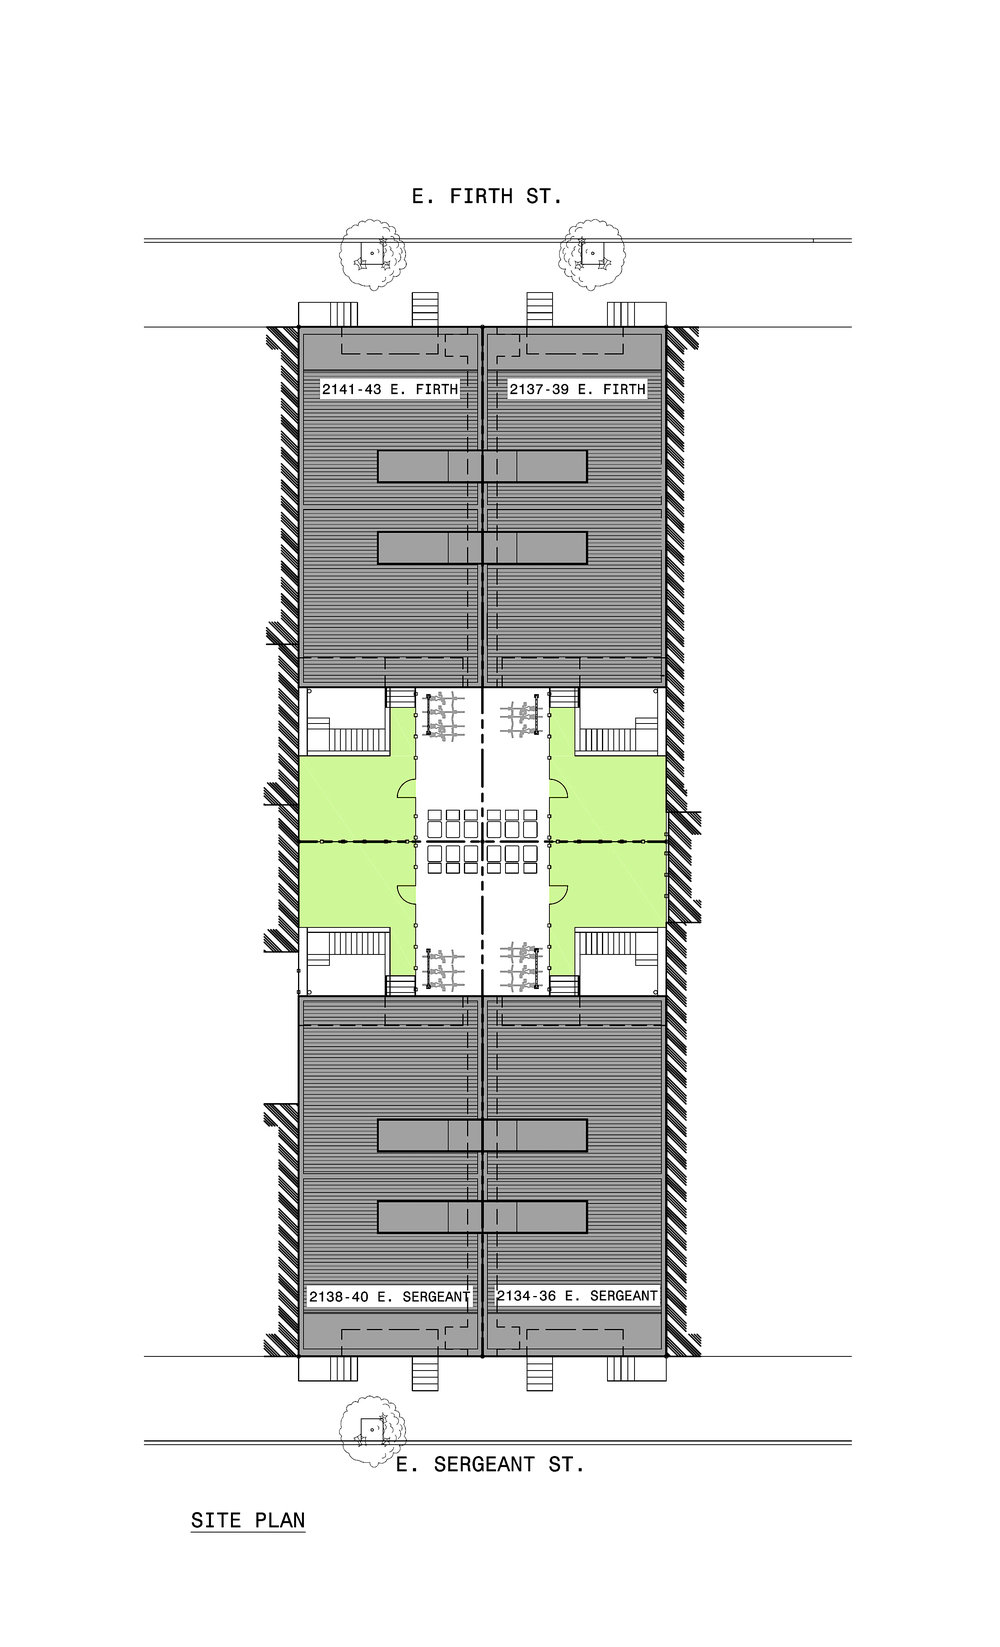 Contact  to receive full site and floor plans